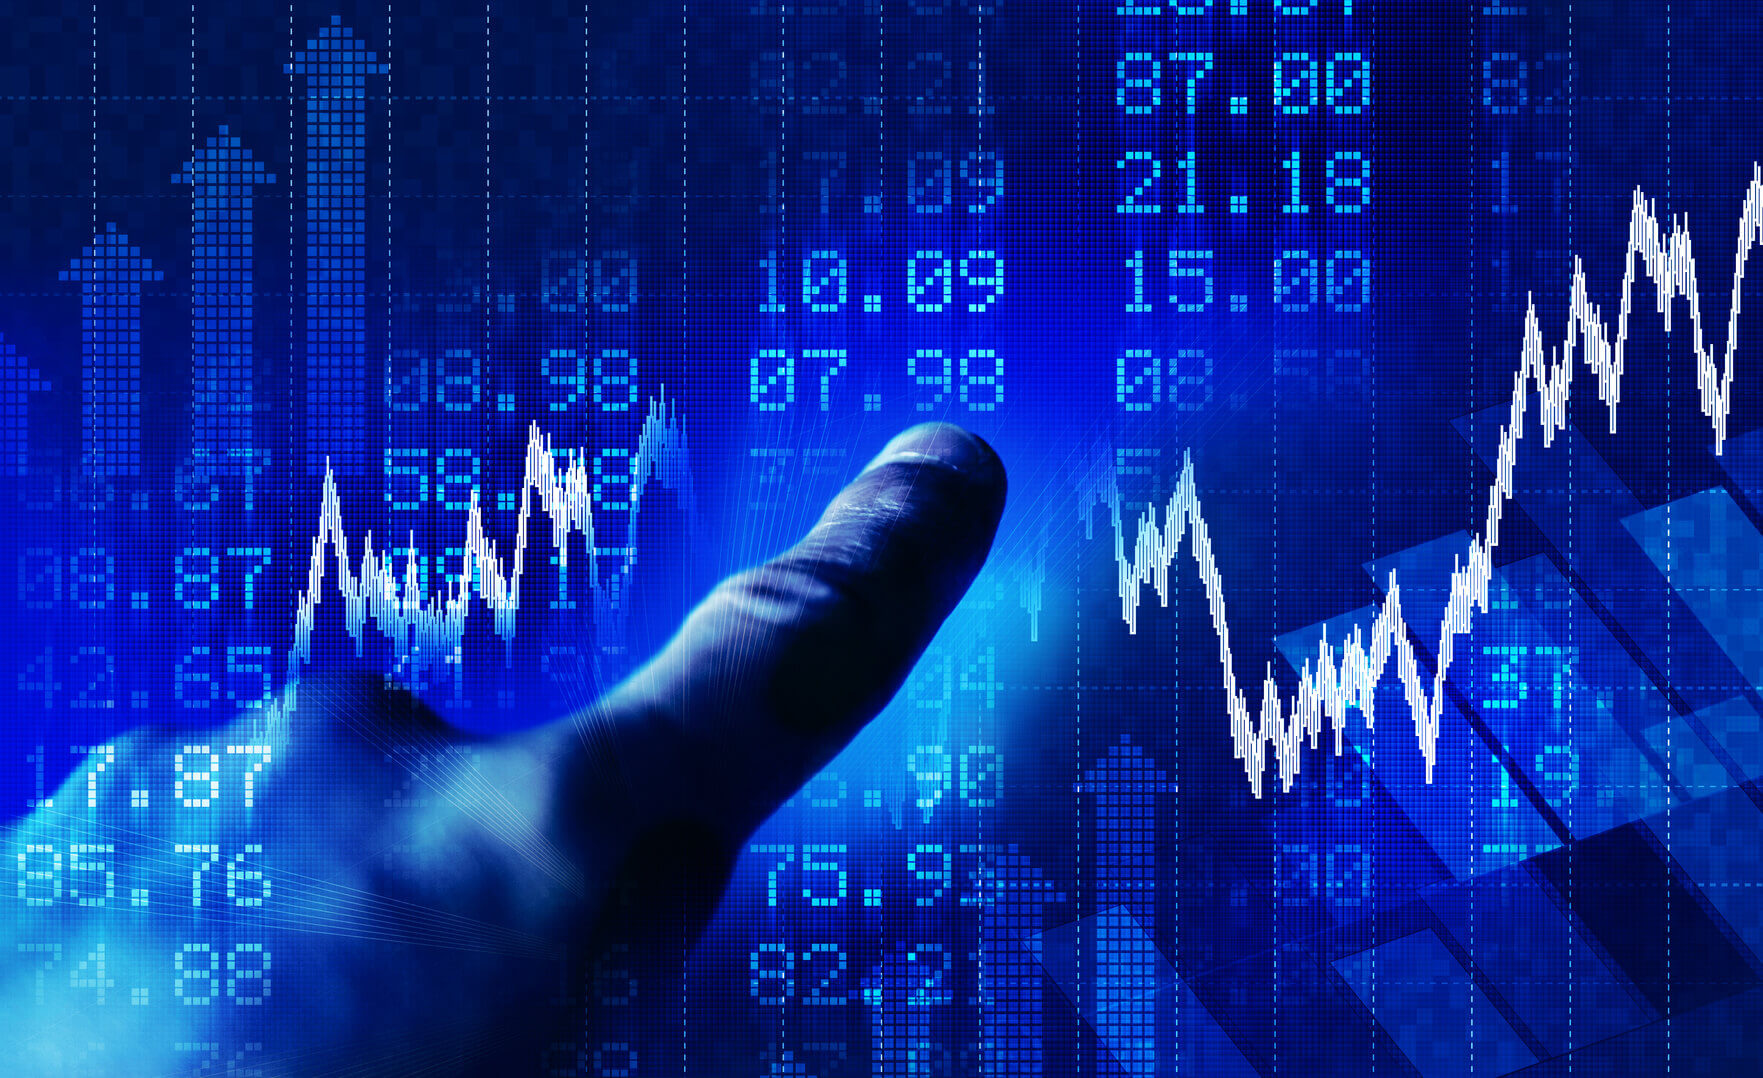 Intuitive trading systems llc